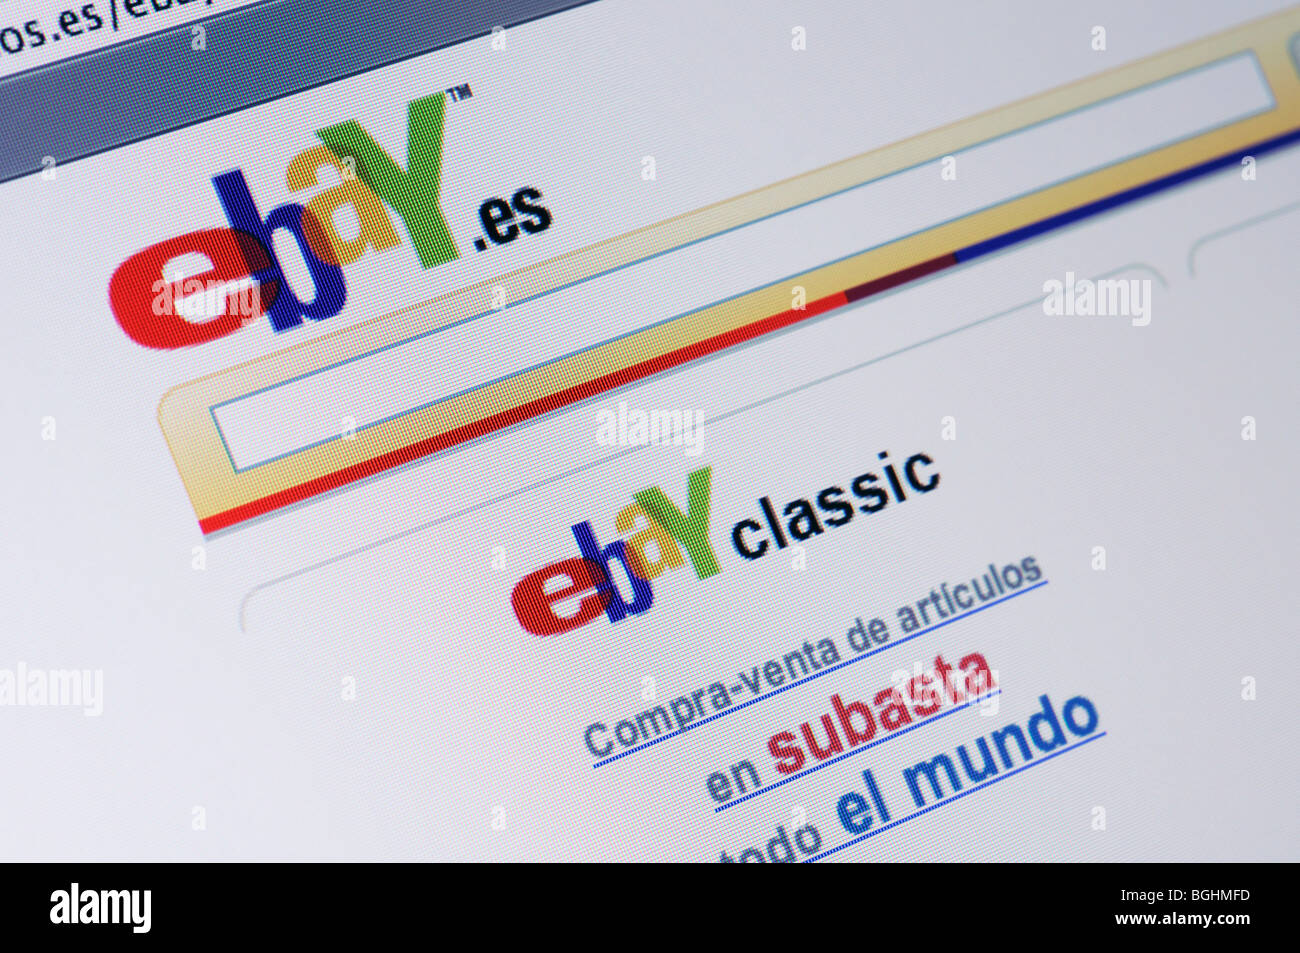 Ebay Web Site High Resolution Stock Photography And Images Alamy